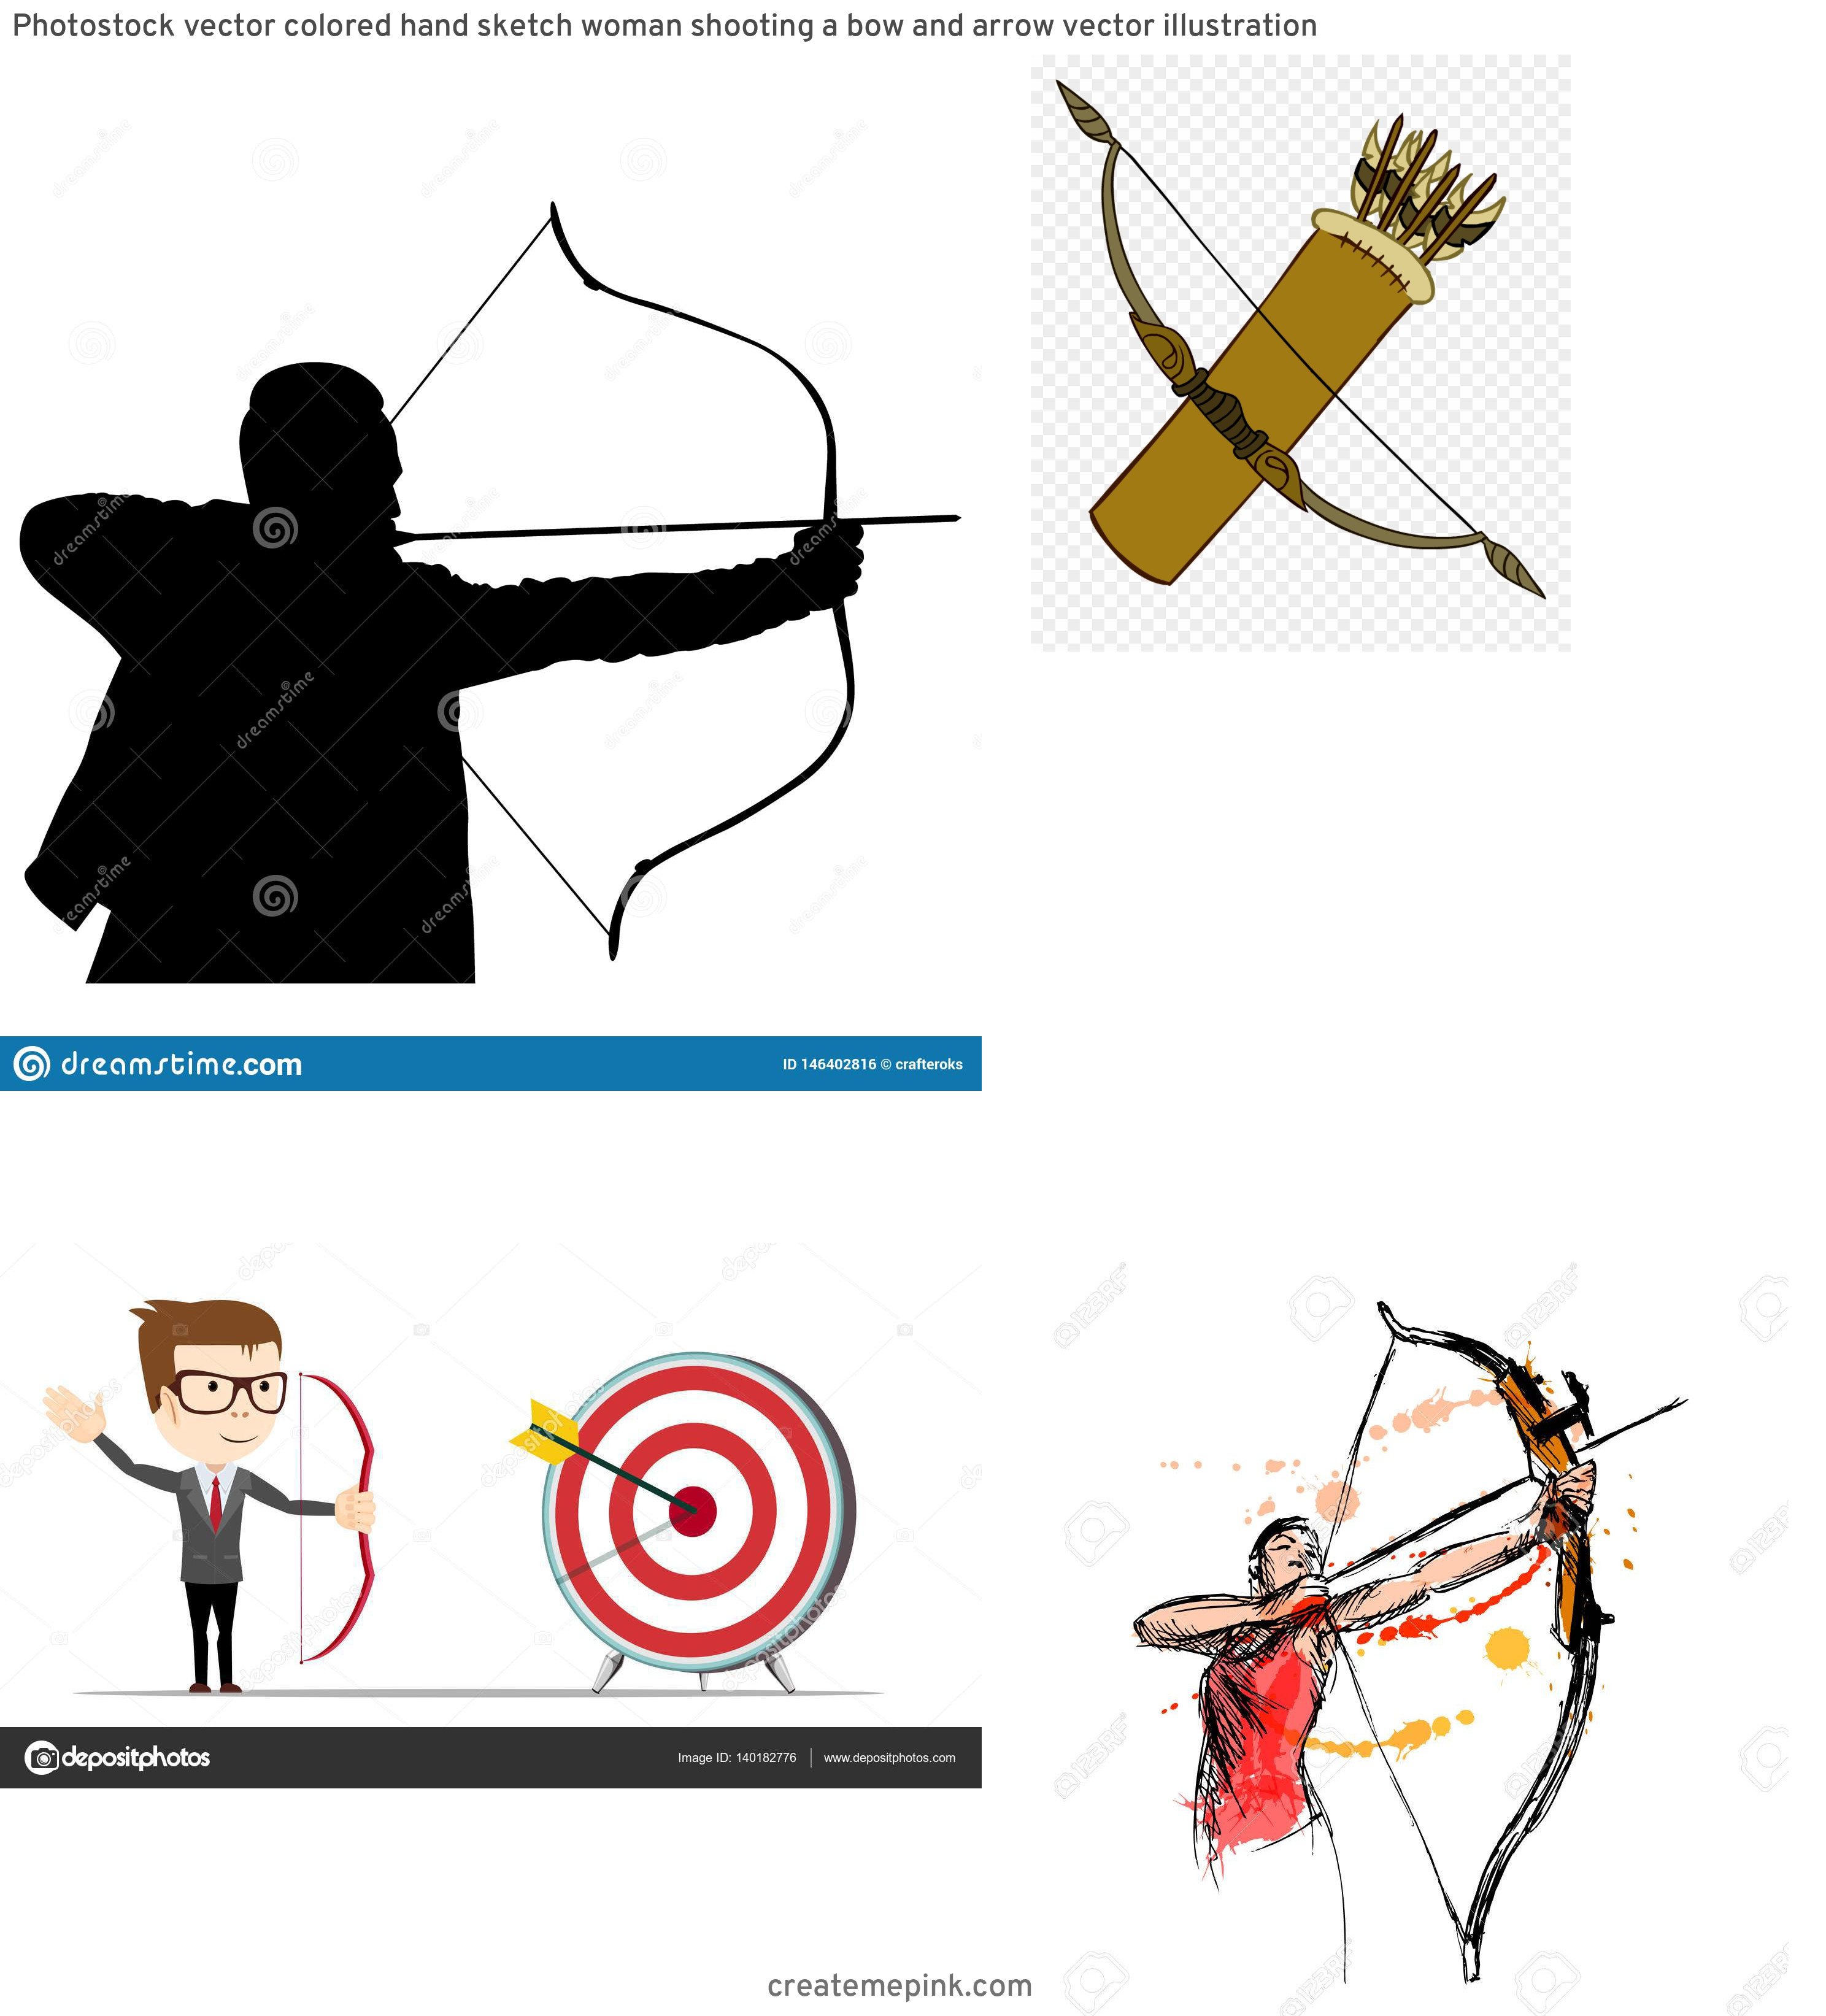 Target Bow And Arrow Vector: Photostock Vector Colored Hand Sketch Woman Shooting A Bow And Arrow Vector Illustration